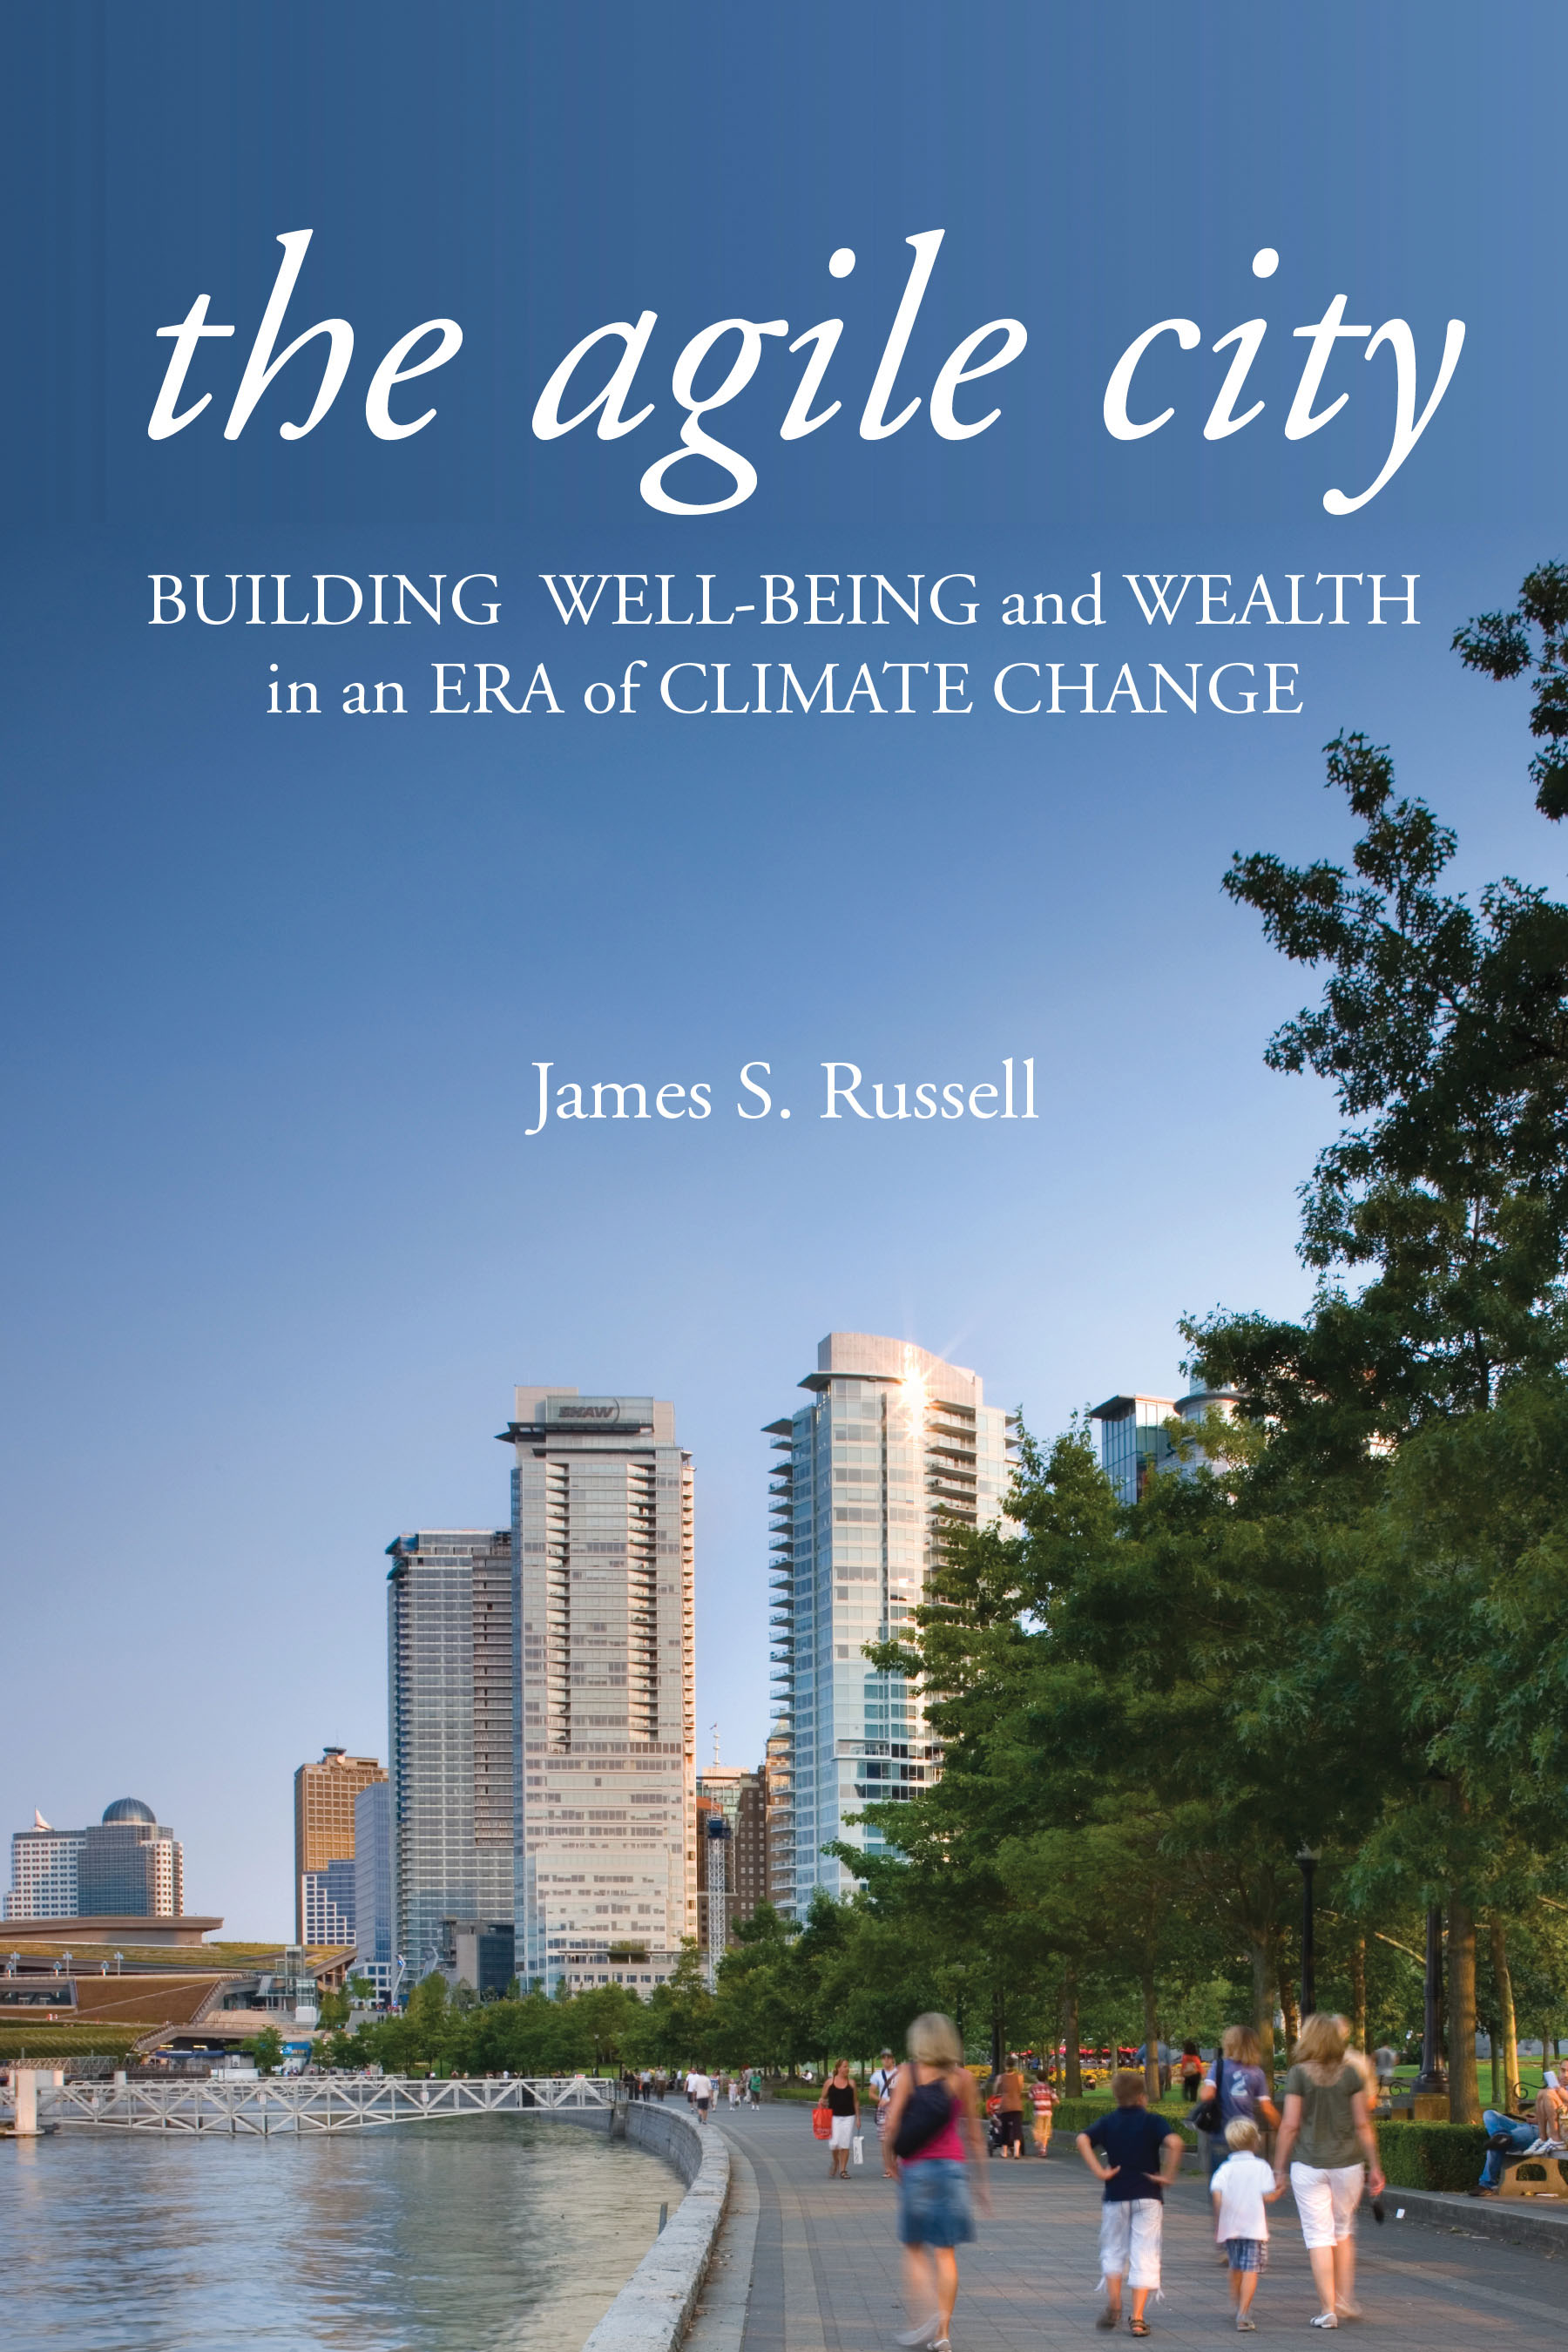 Agile City: Building Well-being and Wealth in an Era of Climate Change